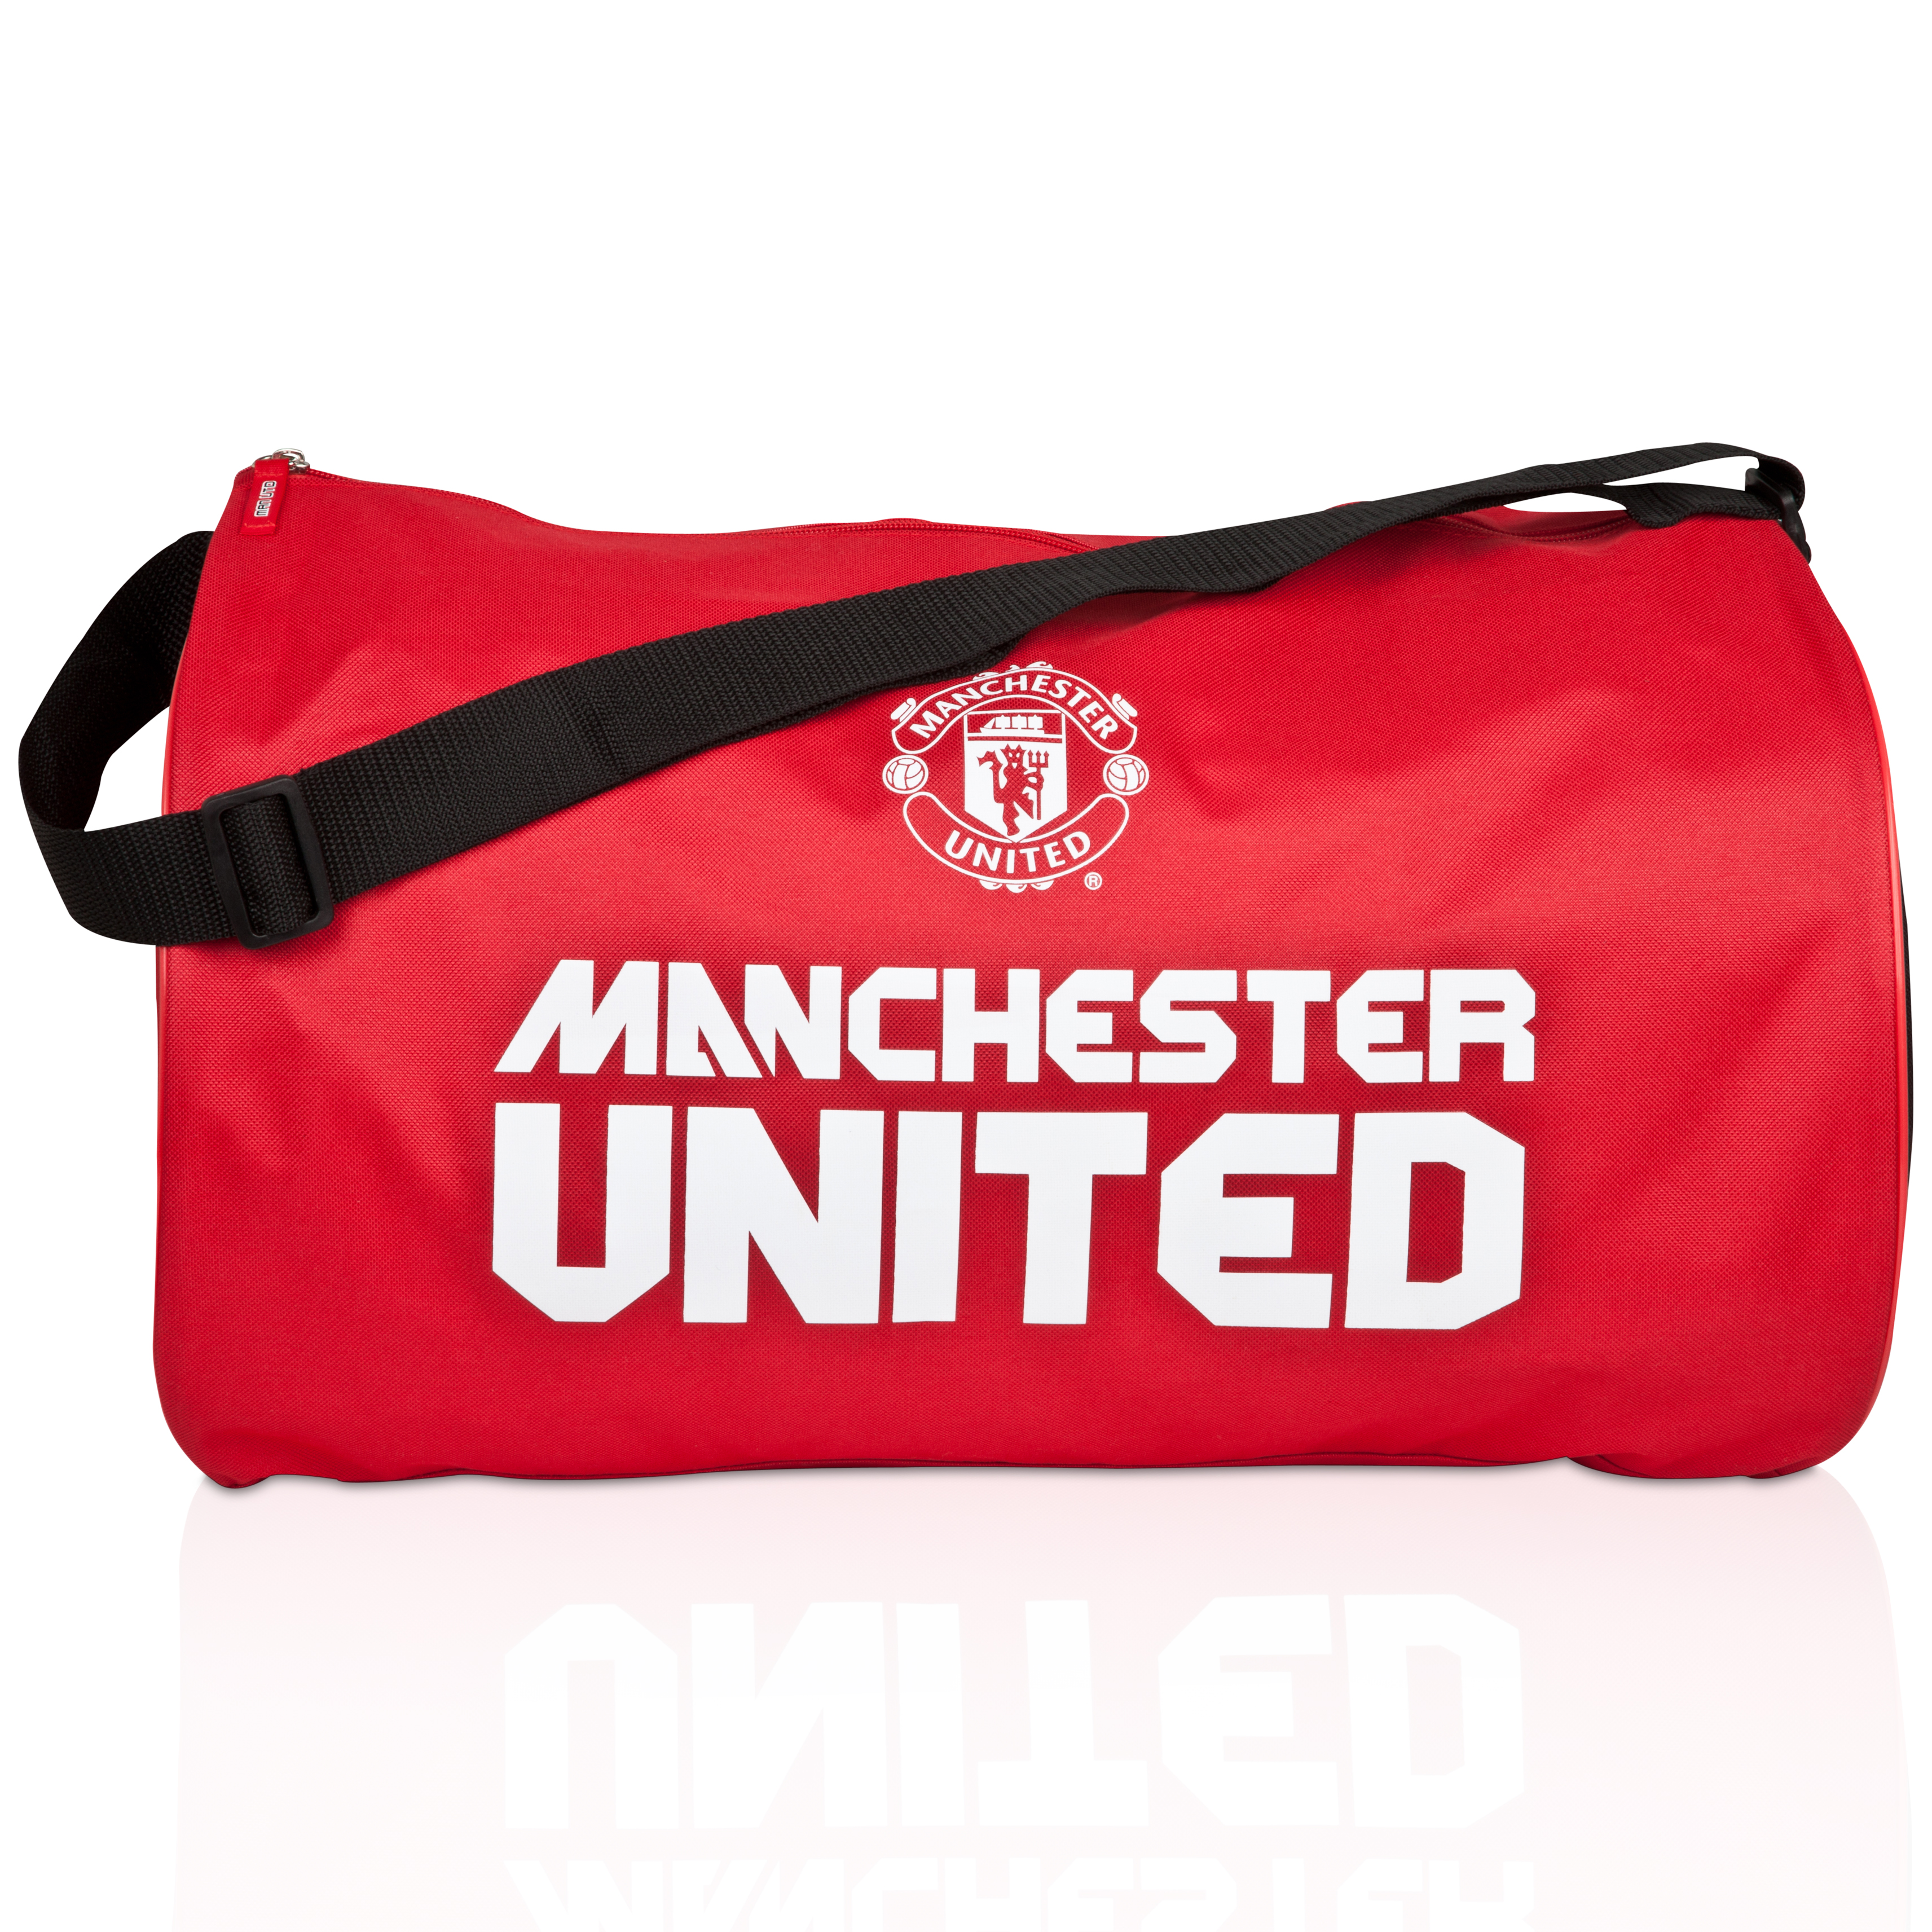 Manchester United Duffle Bag